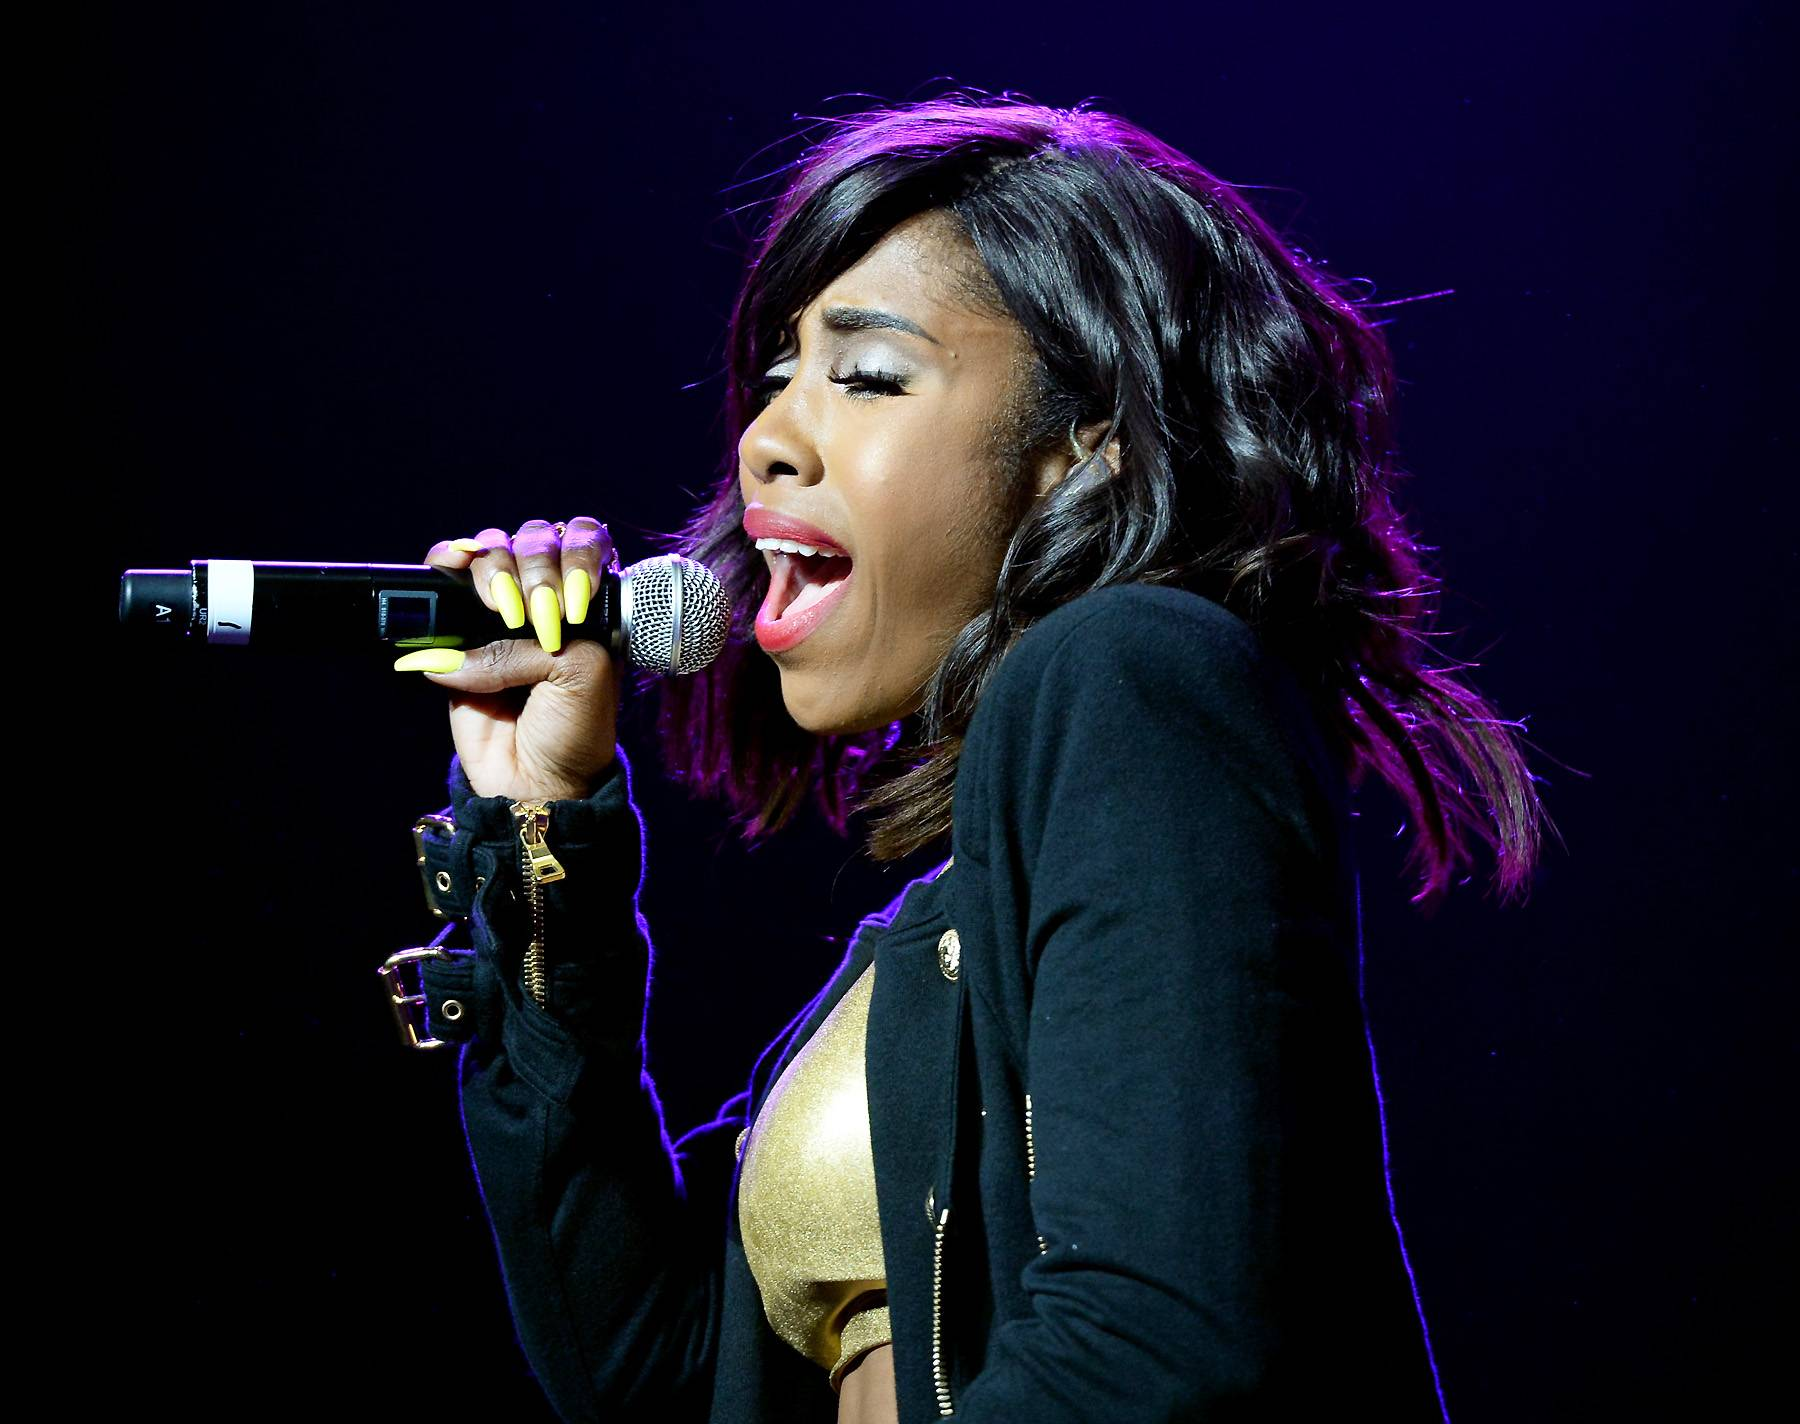 Sevyn Streeter - (Photo: Earl Gibson/BET/Getty Images for BET)